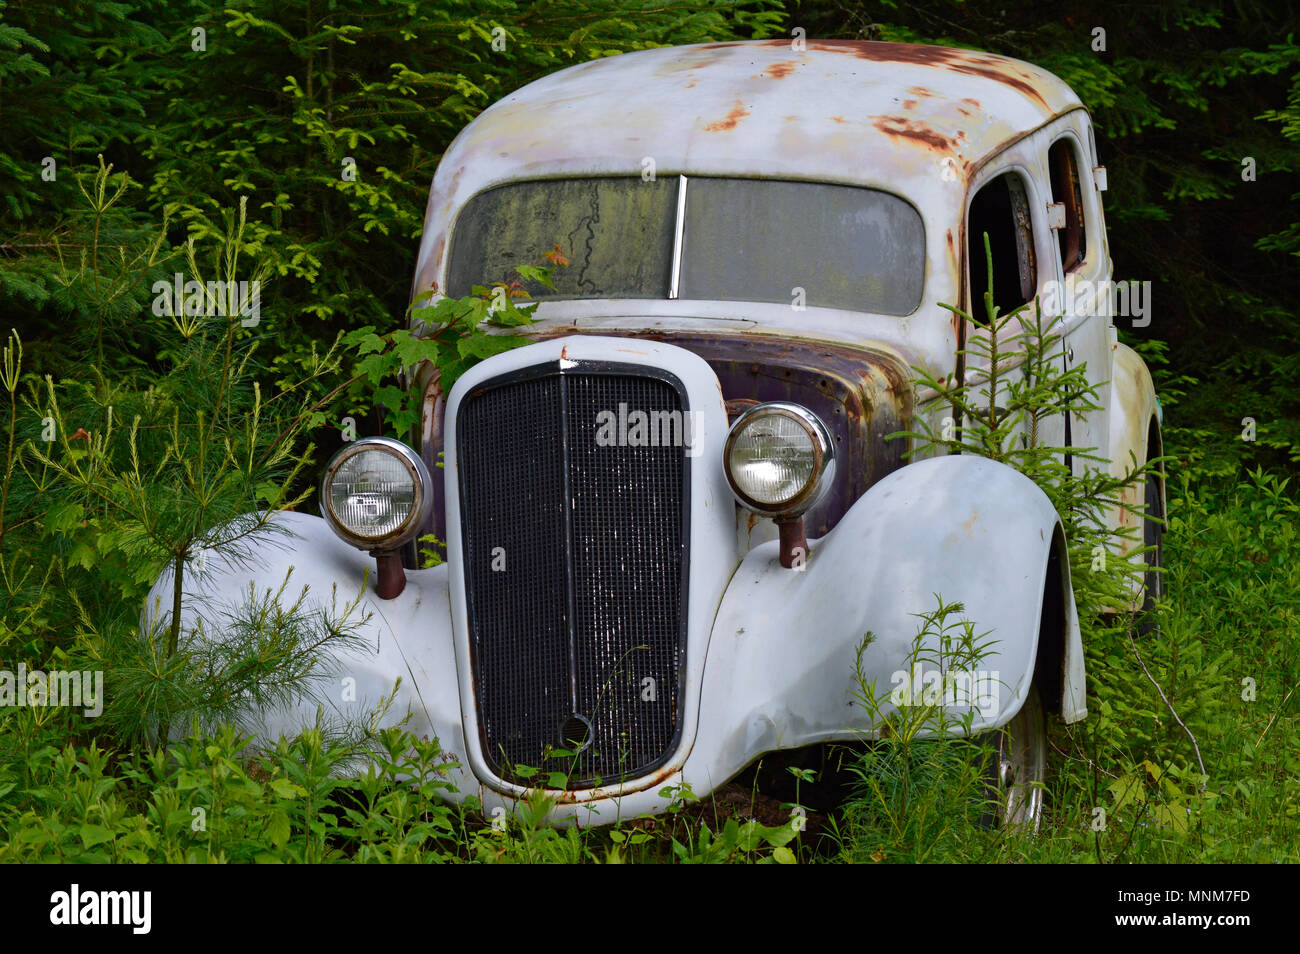 Old Mercedes circa 1940, abandoned in a field near a large forest - Stock Image